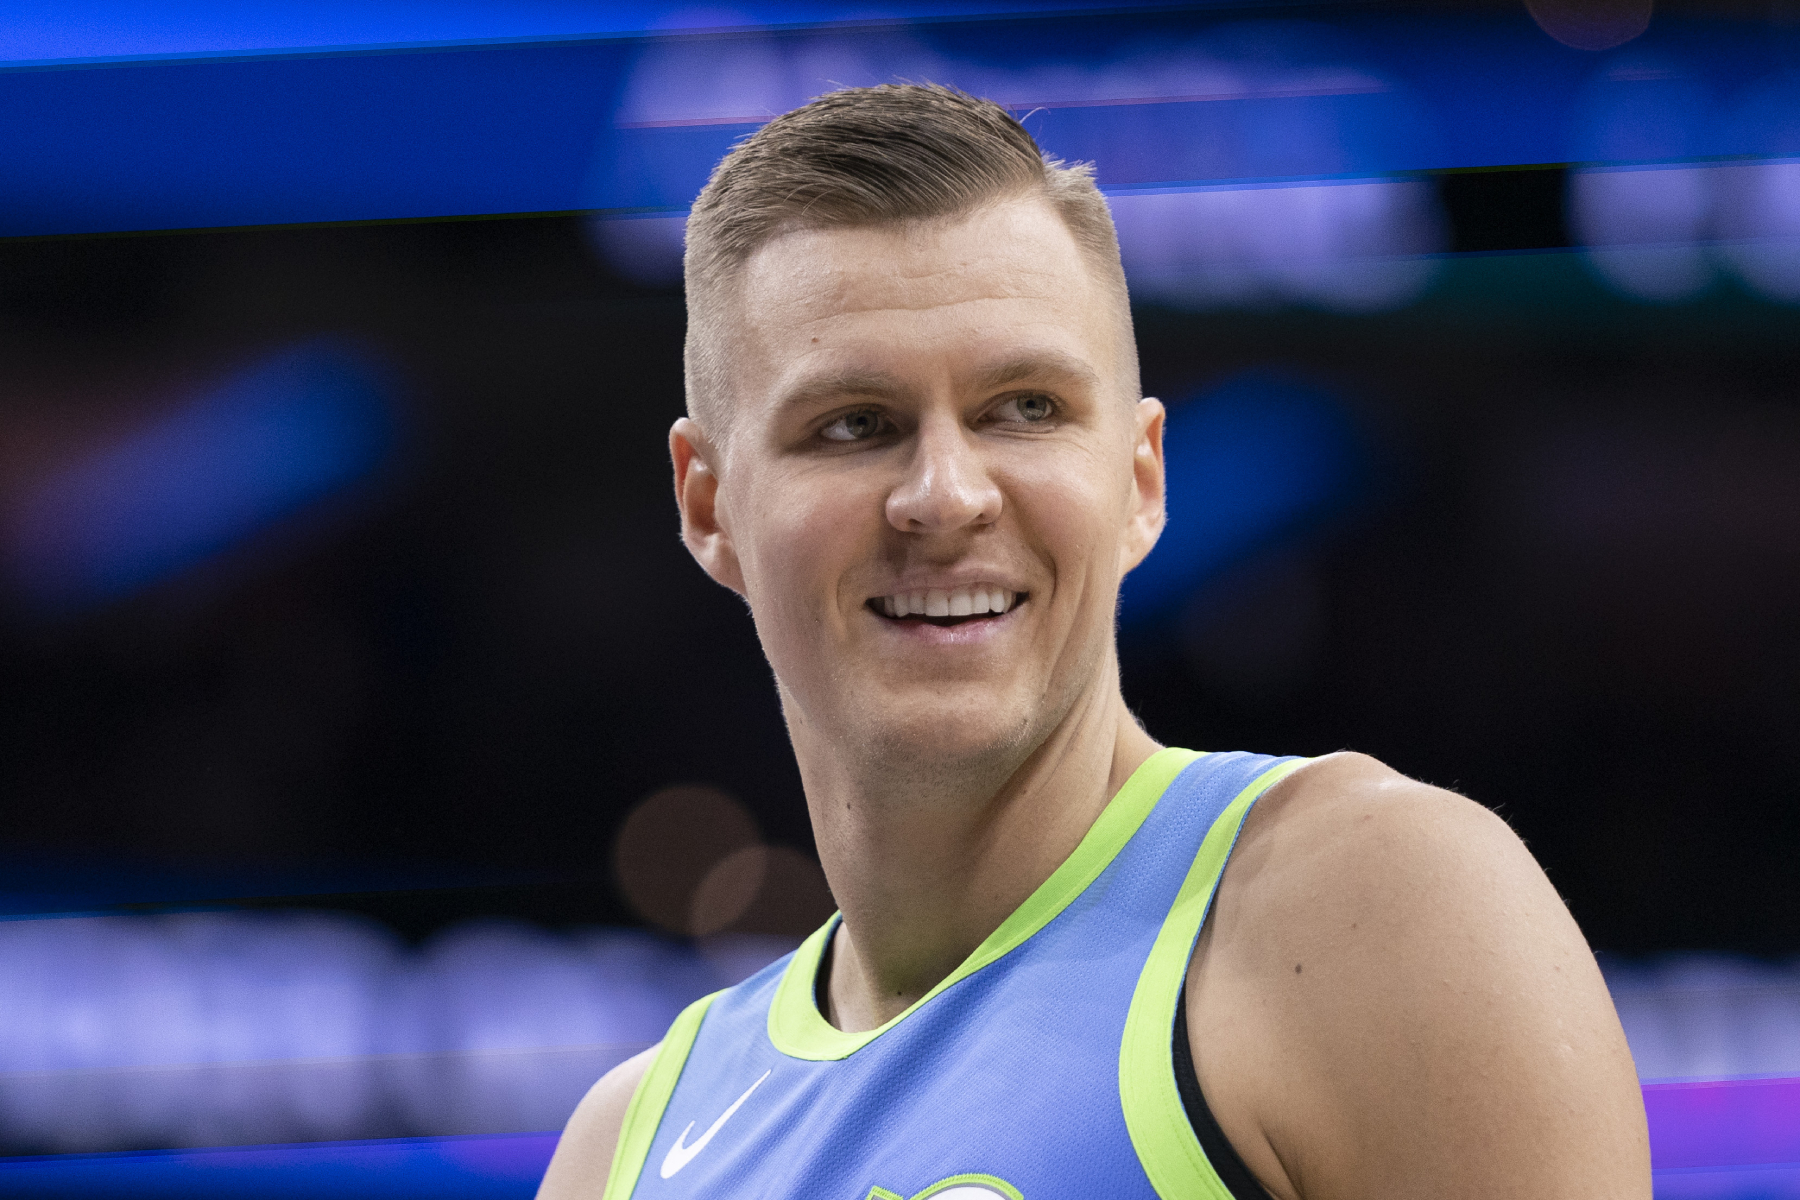 Kristaps Porzingis has become an NBA star while playing for the New York Knicks and Dallas Mavericks. What is his net worth?